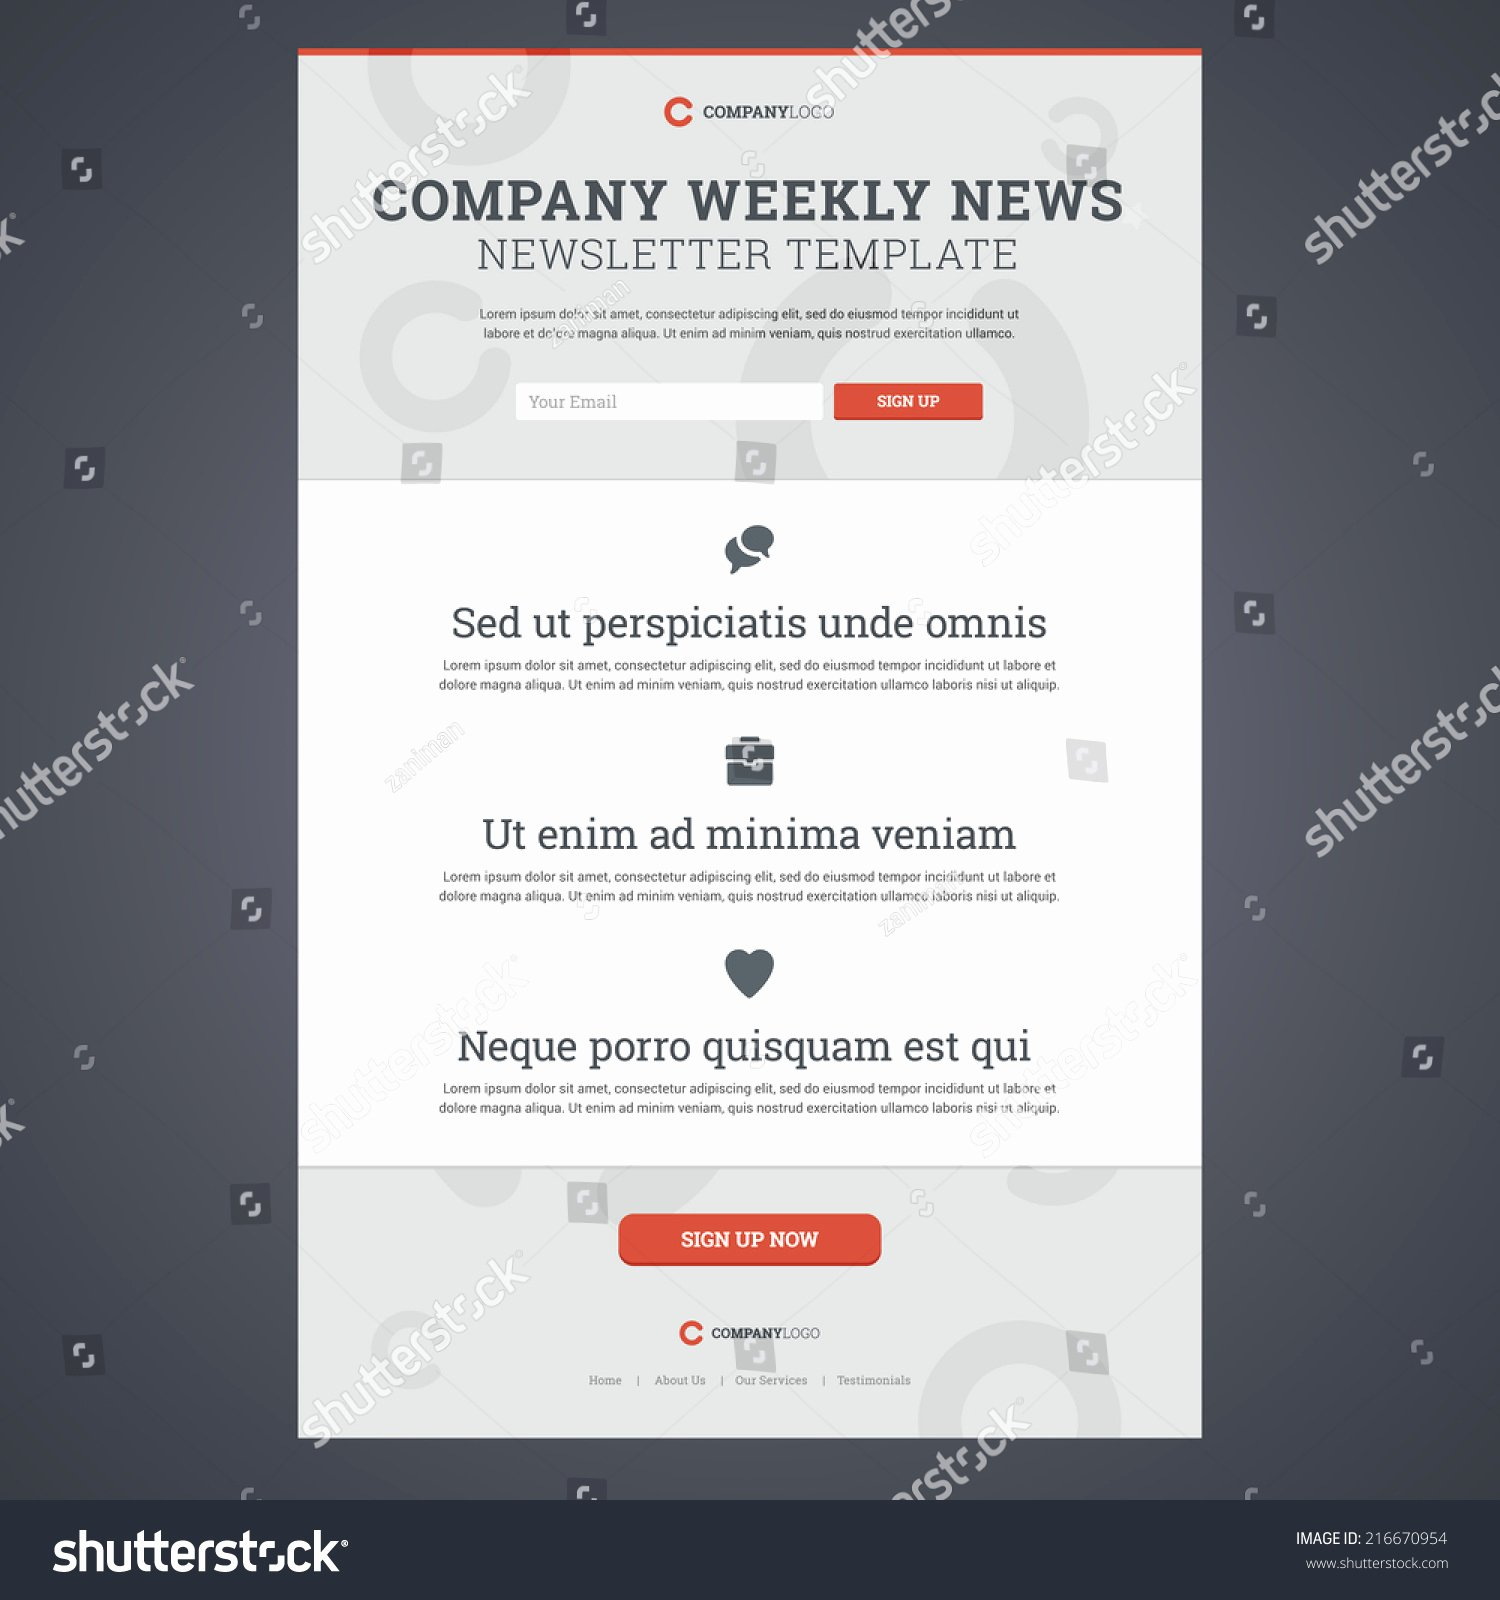 Newsletter Signup form Template Beautiful Pany News Newsletter Template Sign form Stock Vector